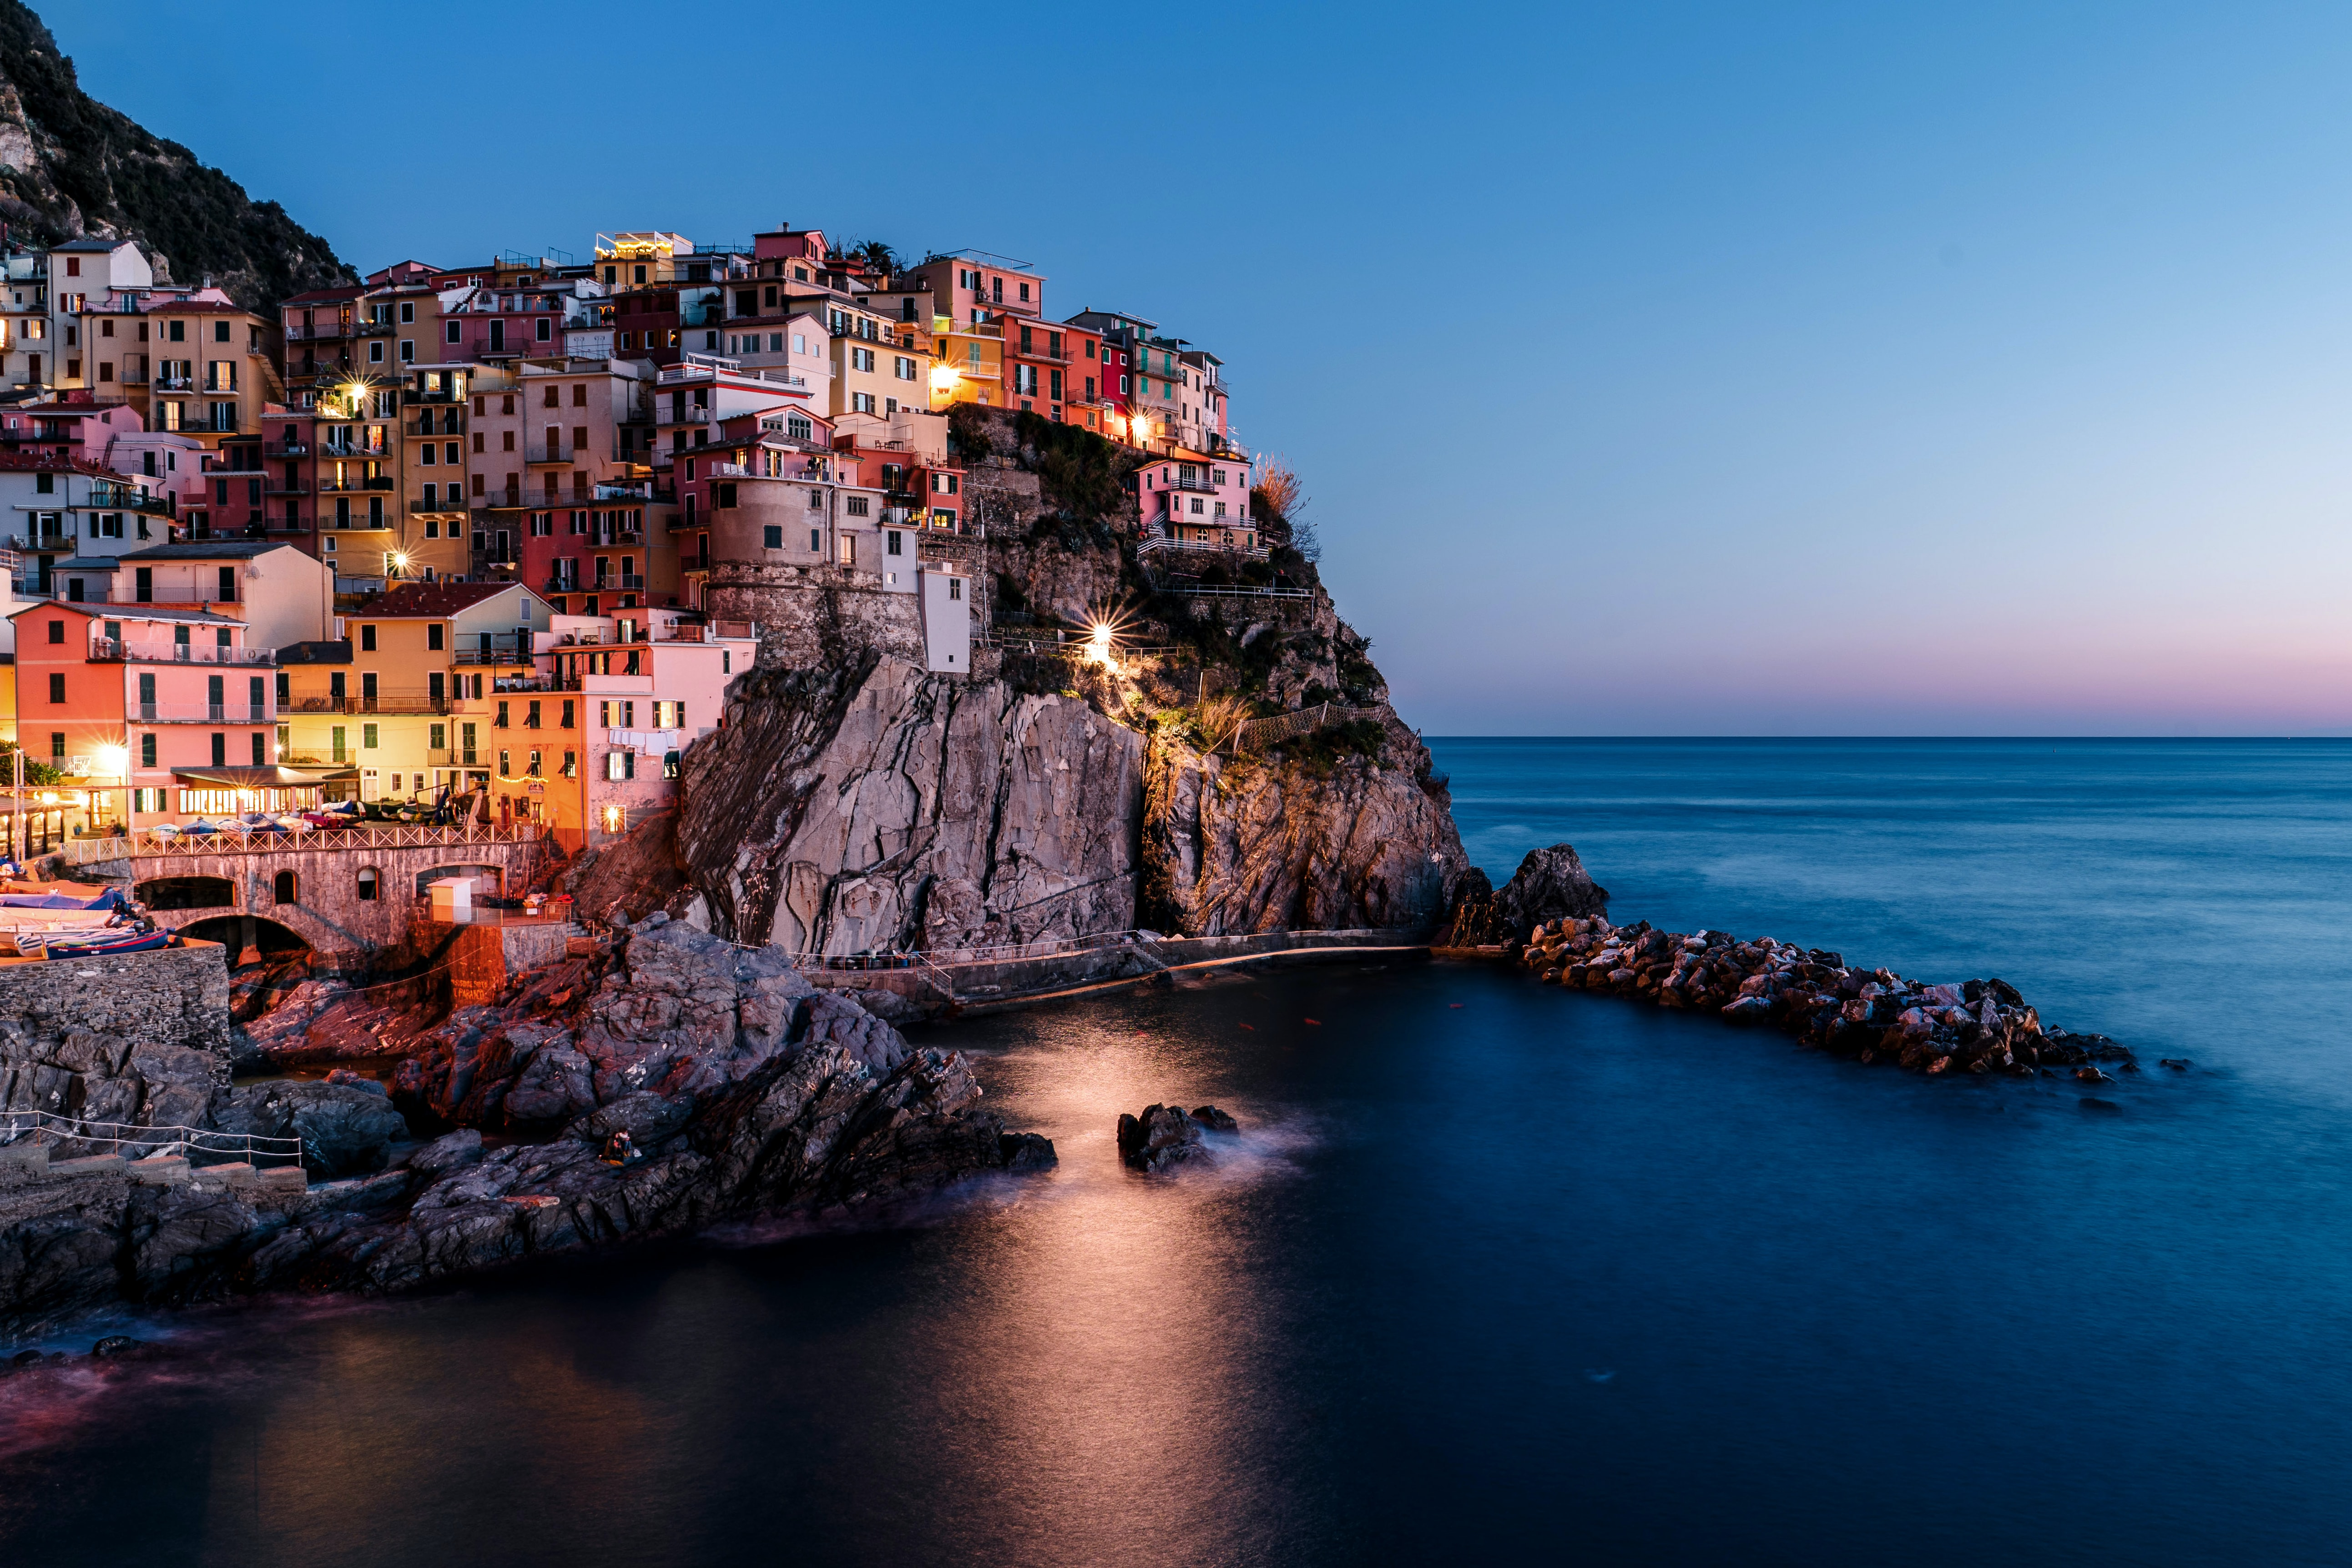 Cinque Terre, Italy Itinerary for 10 Days